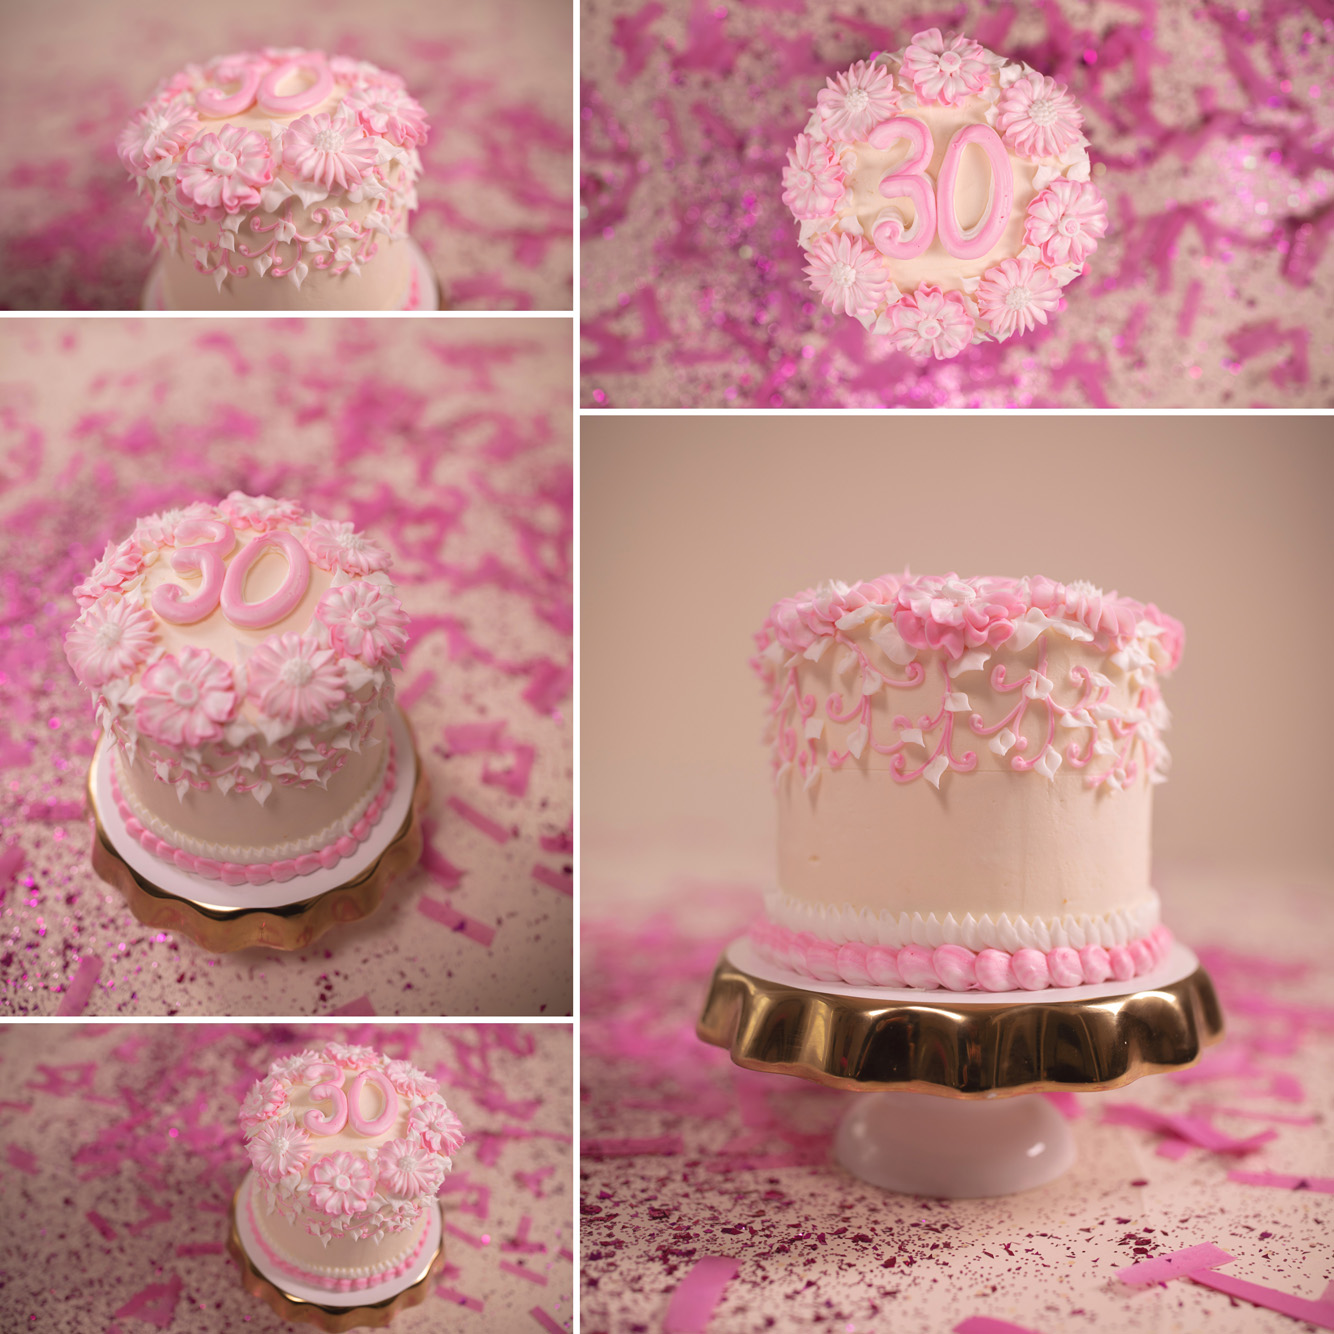 Cake smash by Scones and Doilies